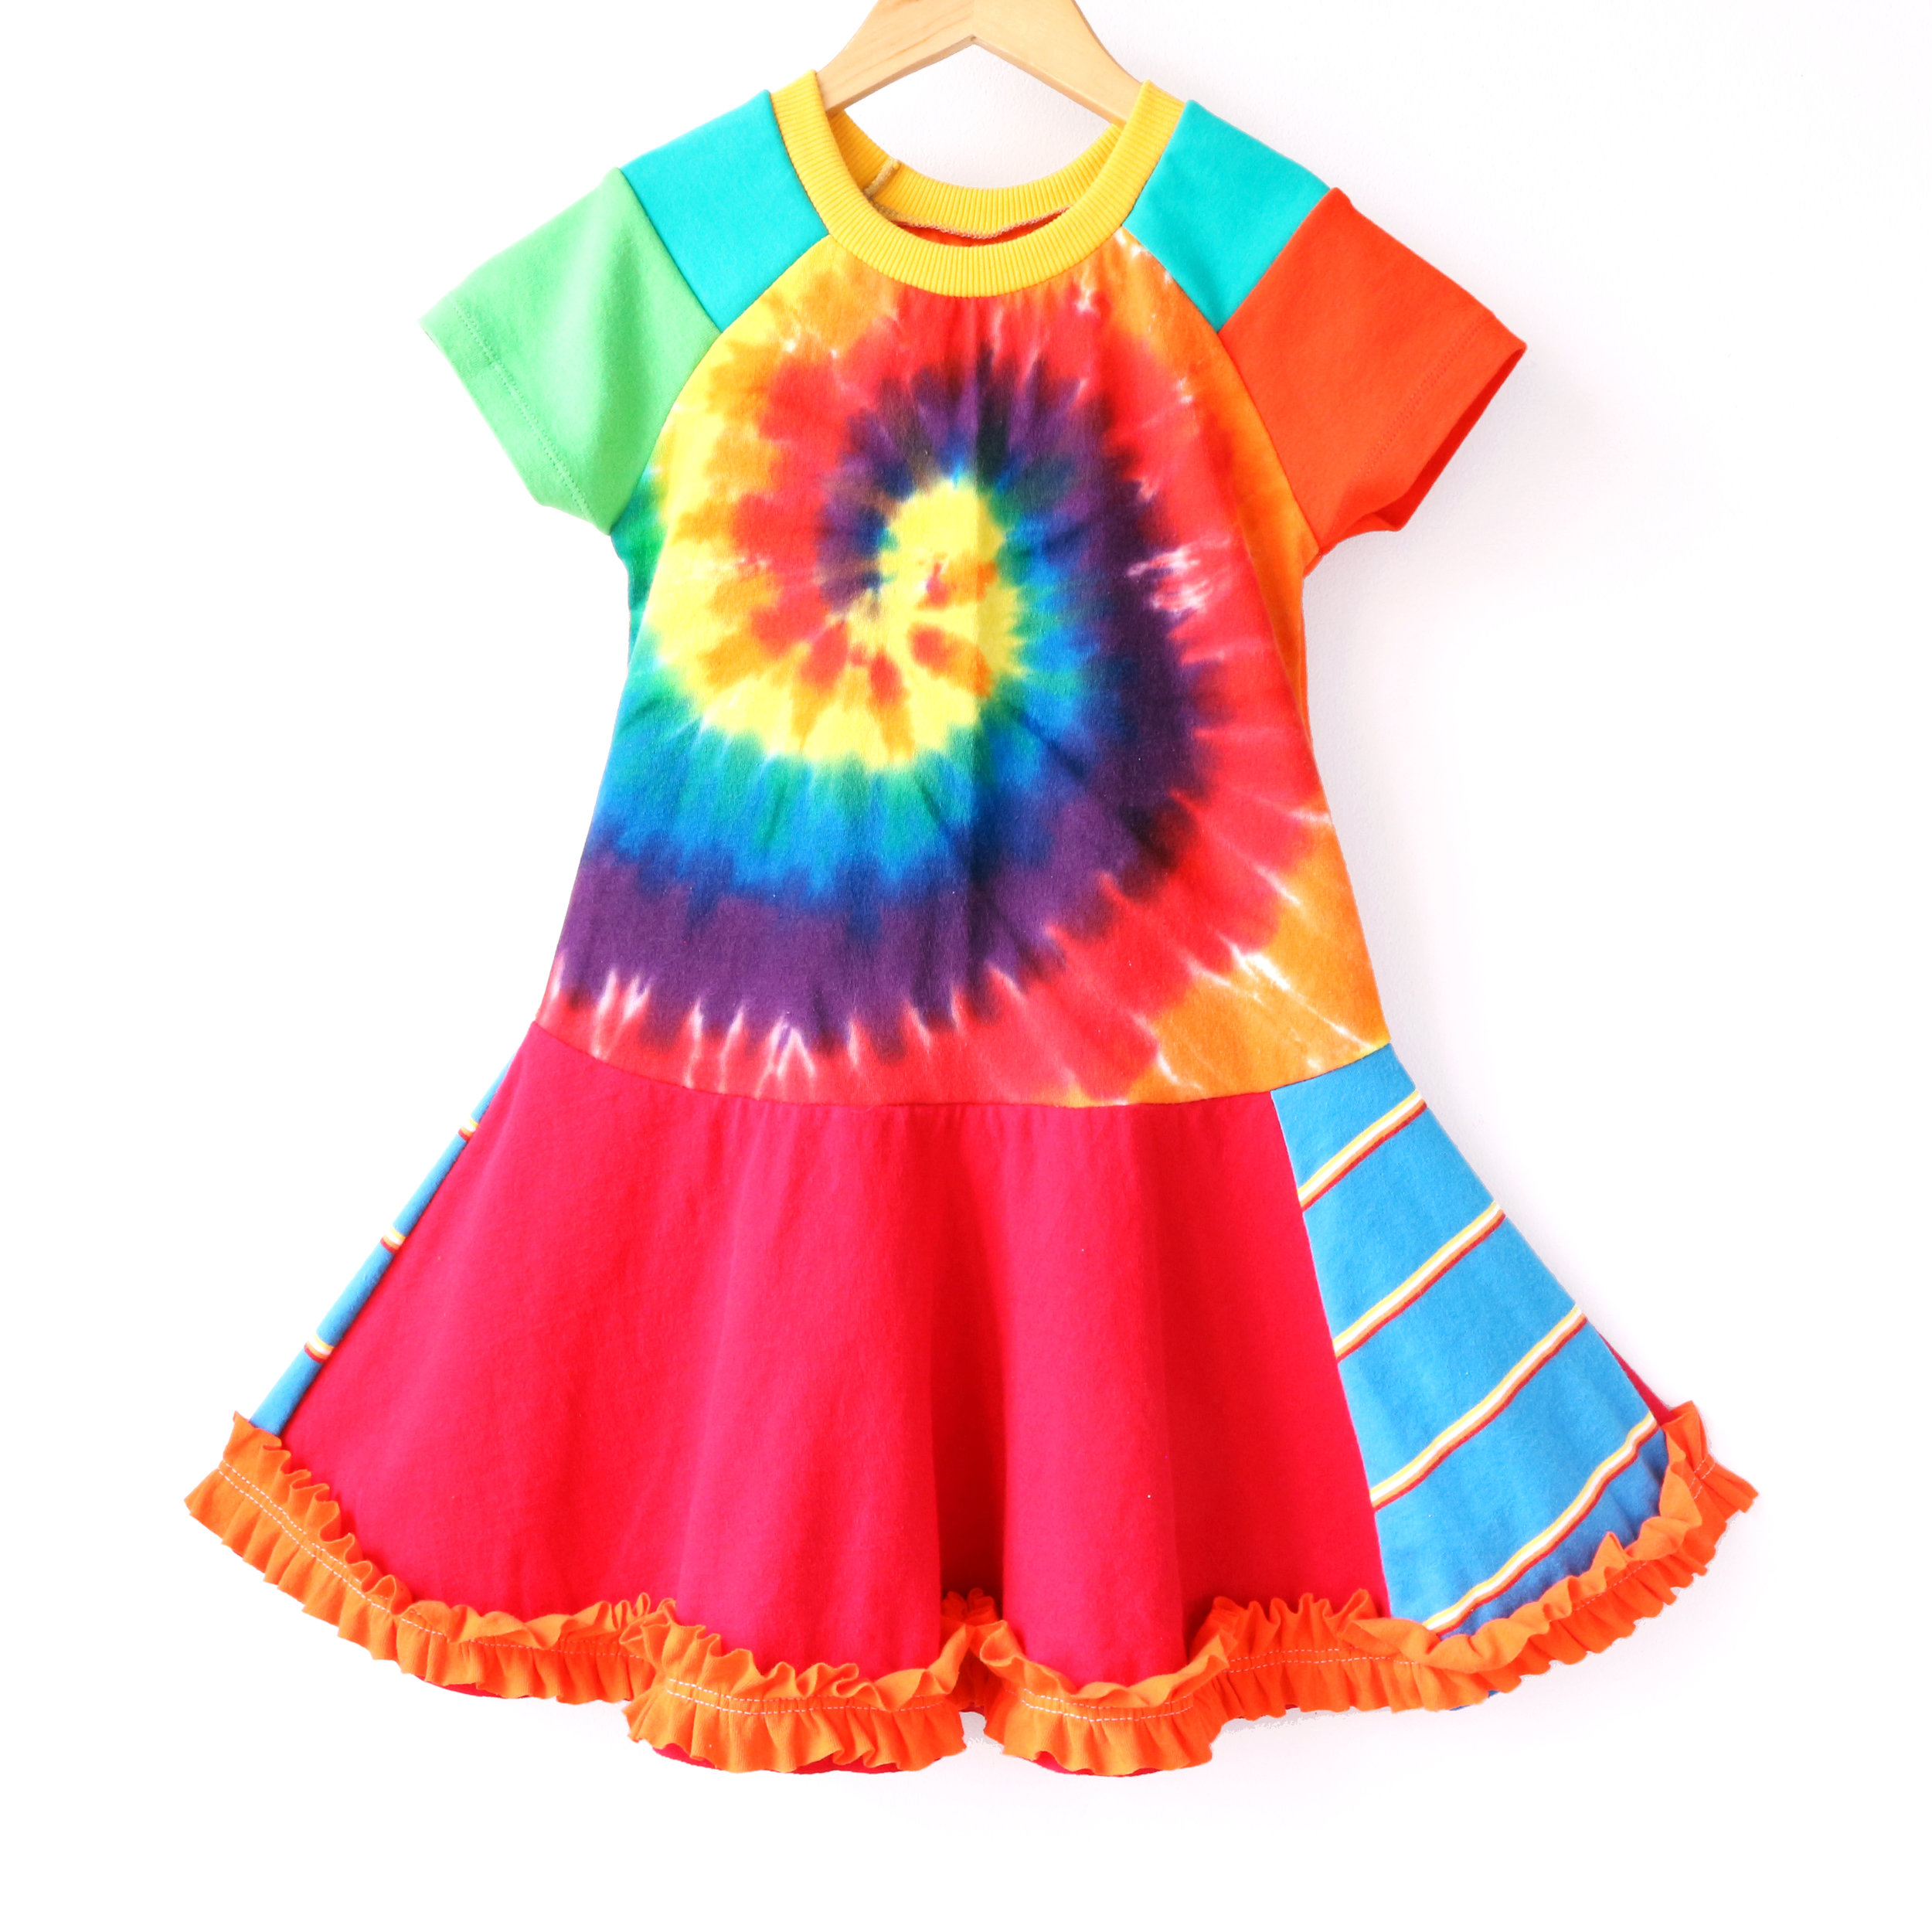 5T orange:ruffle:rainbow:tiedye:ss.jpg